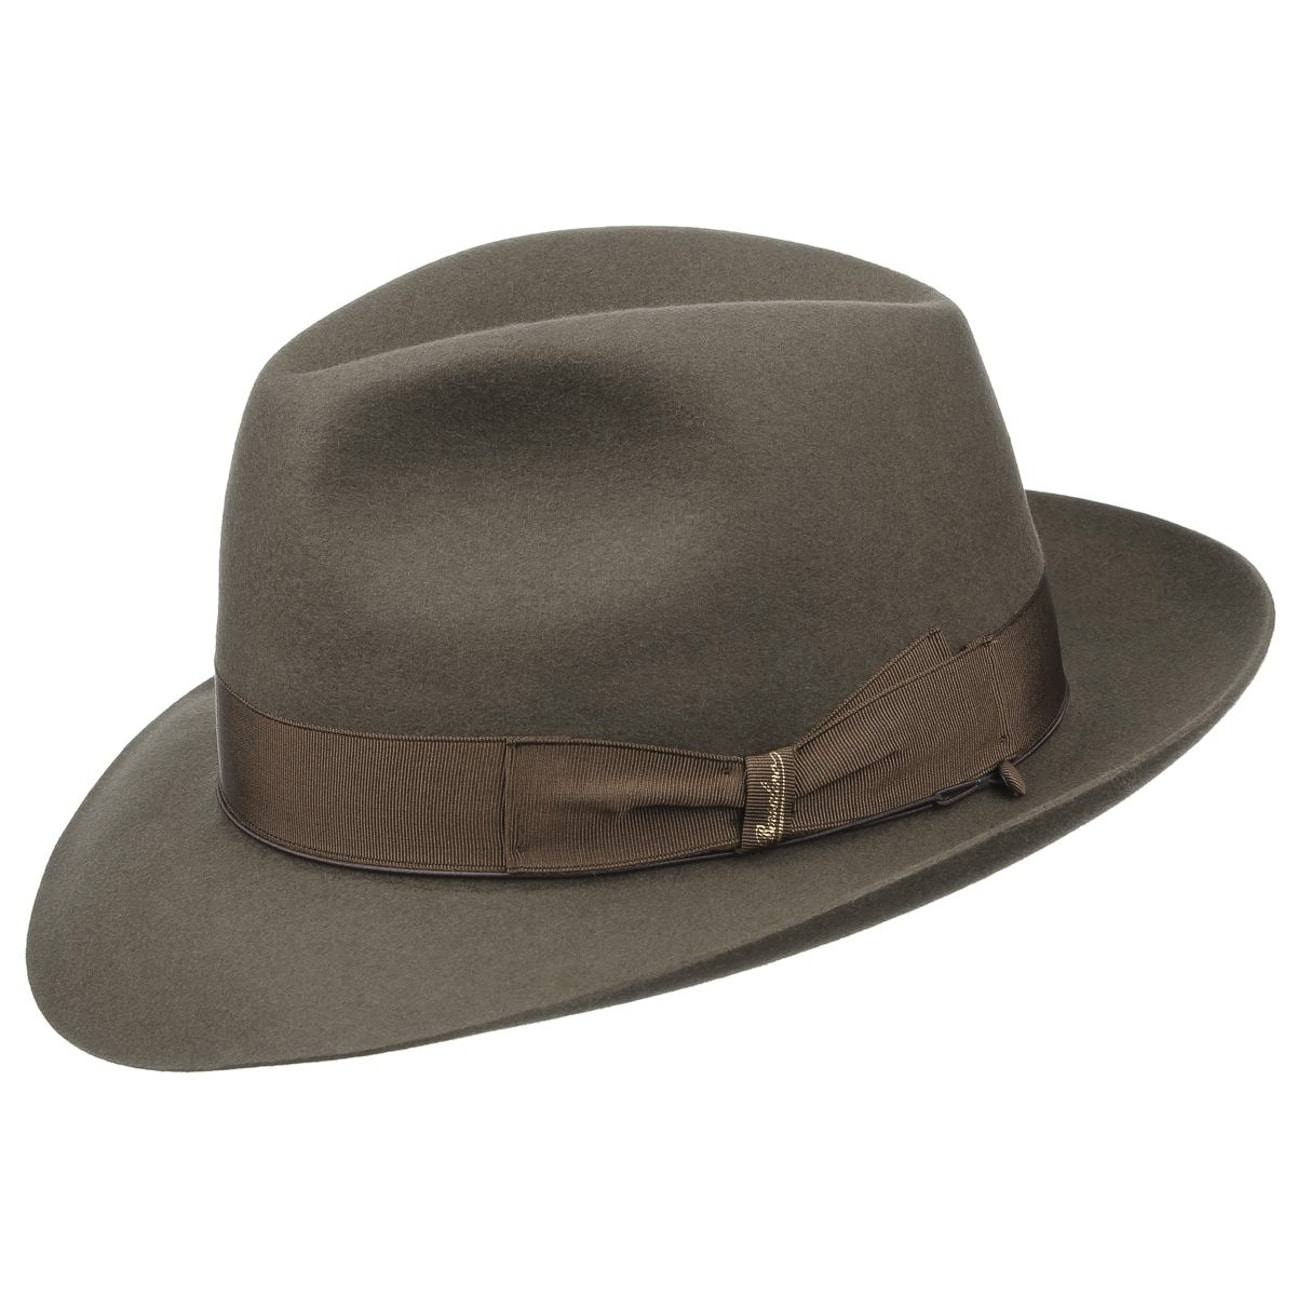 Borsalino Alessandria Fedora Light Brown